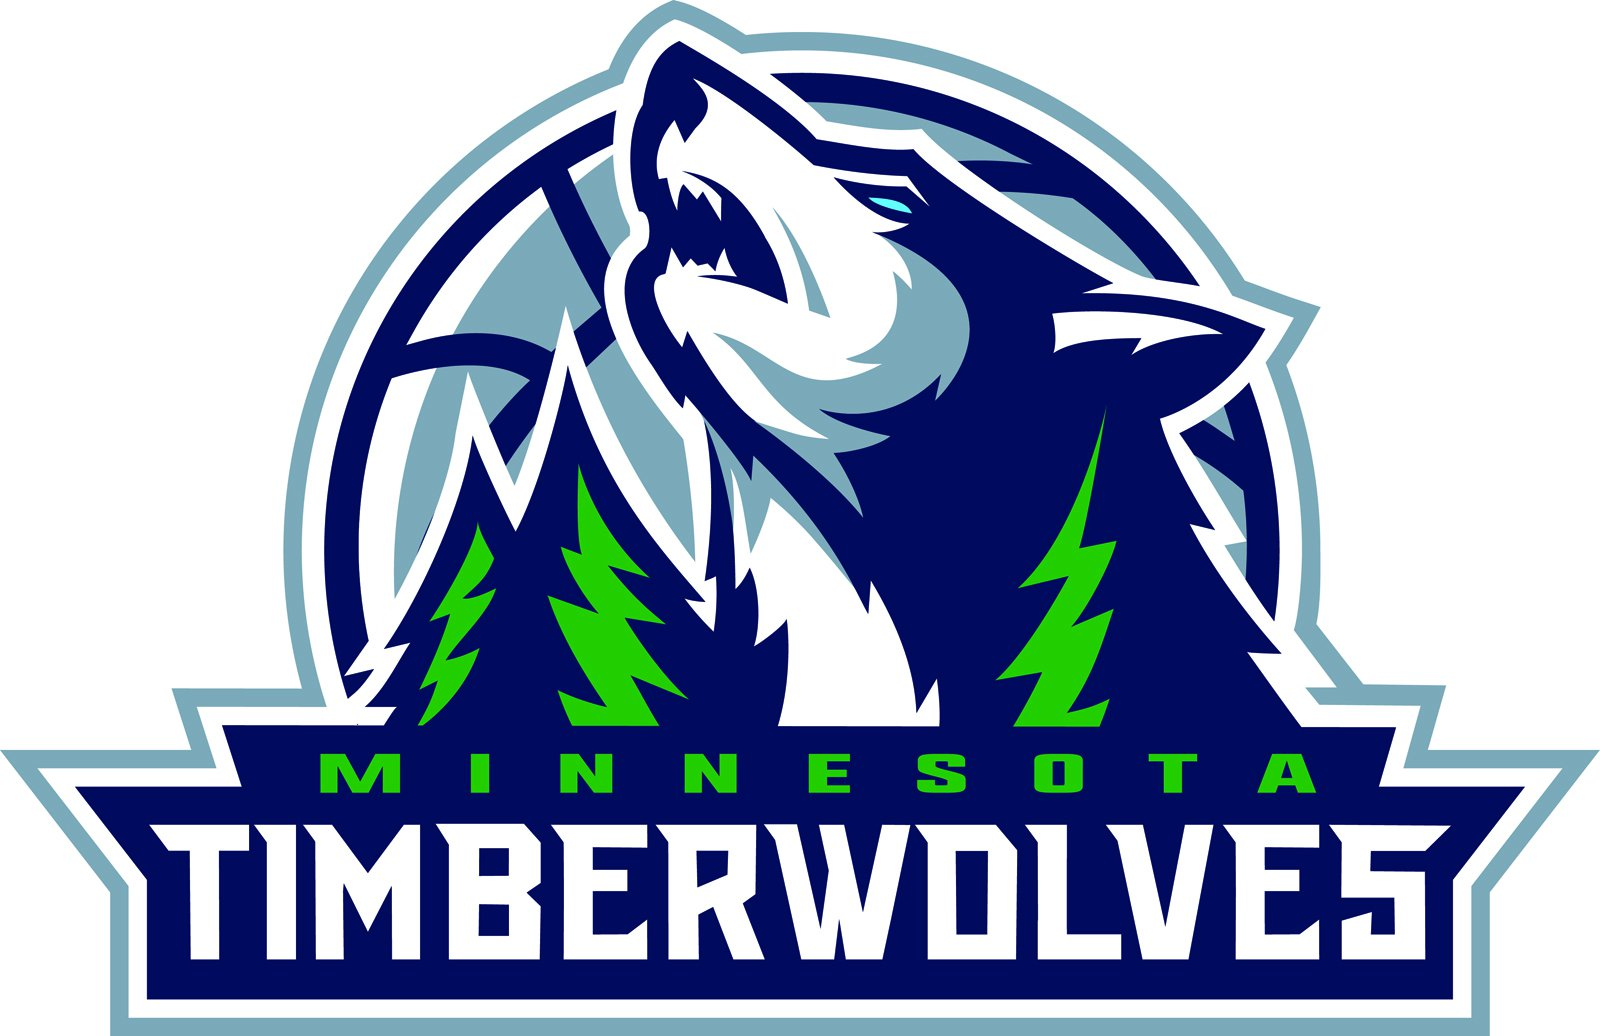 Meaning Minnesota Timberwolves Logo And Symbol